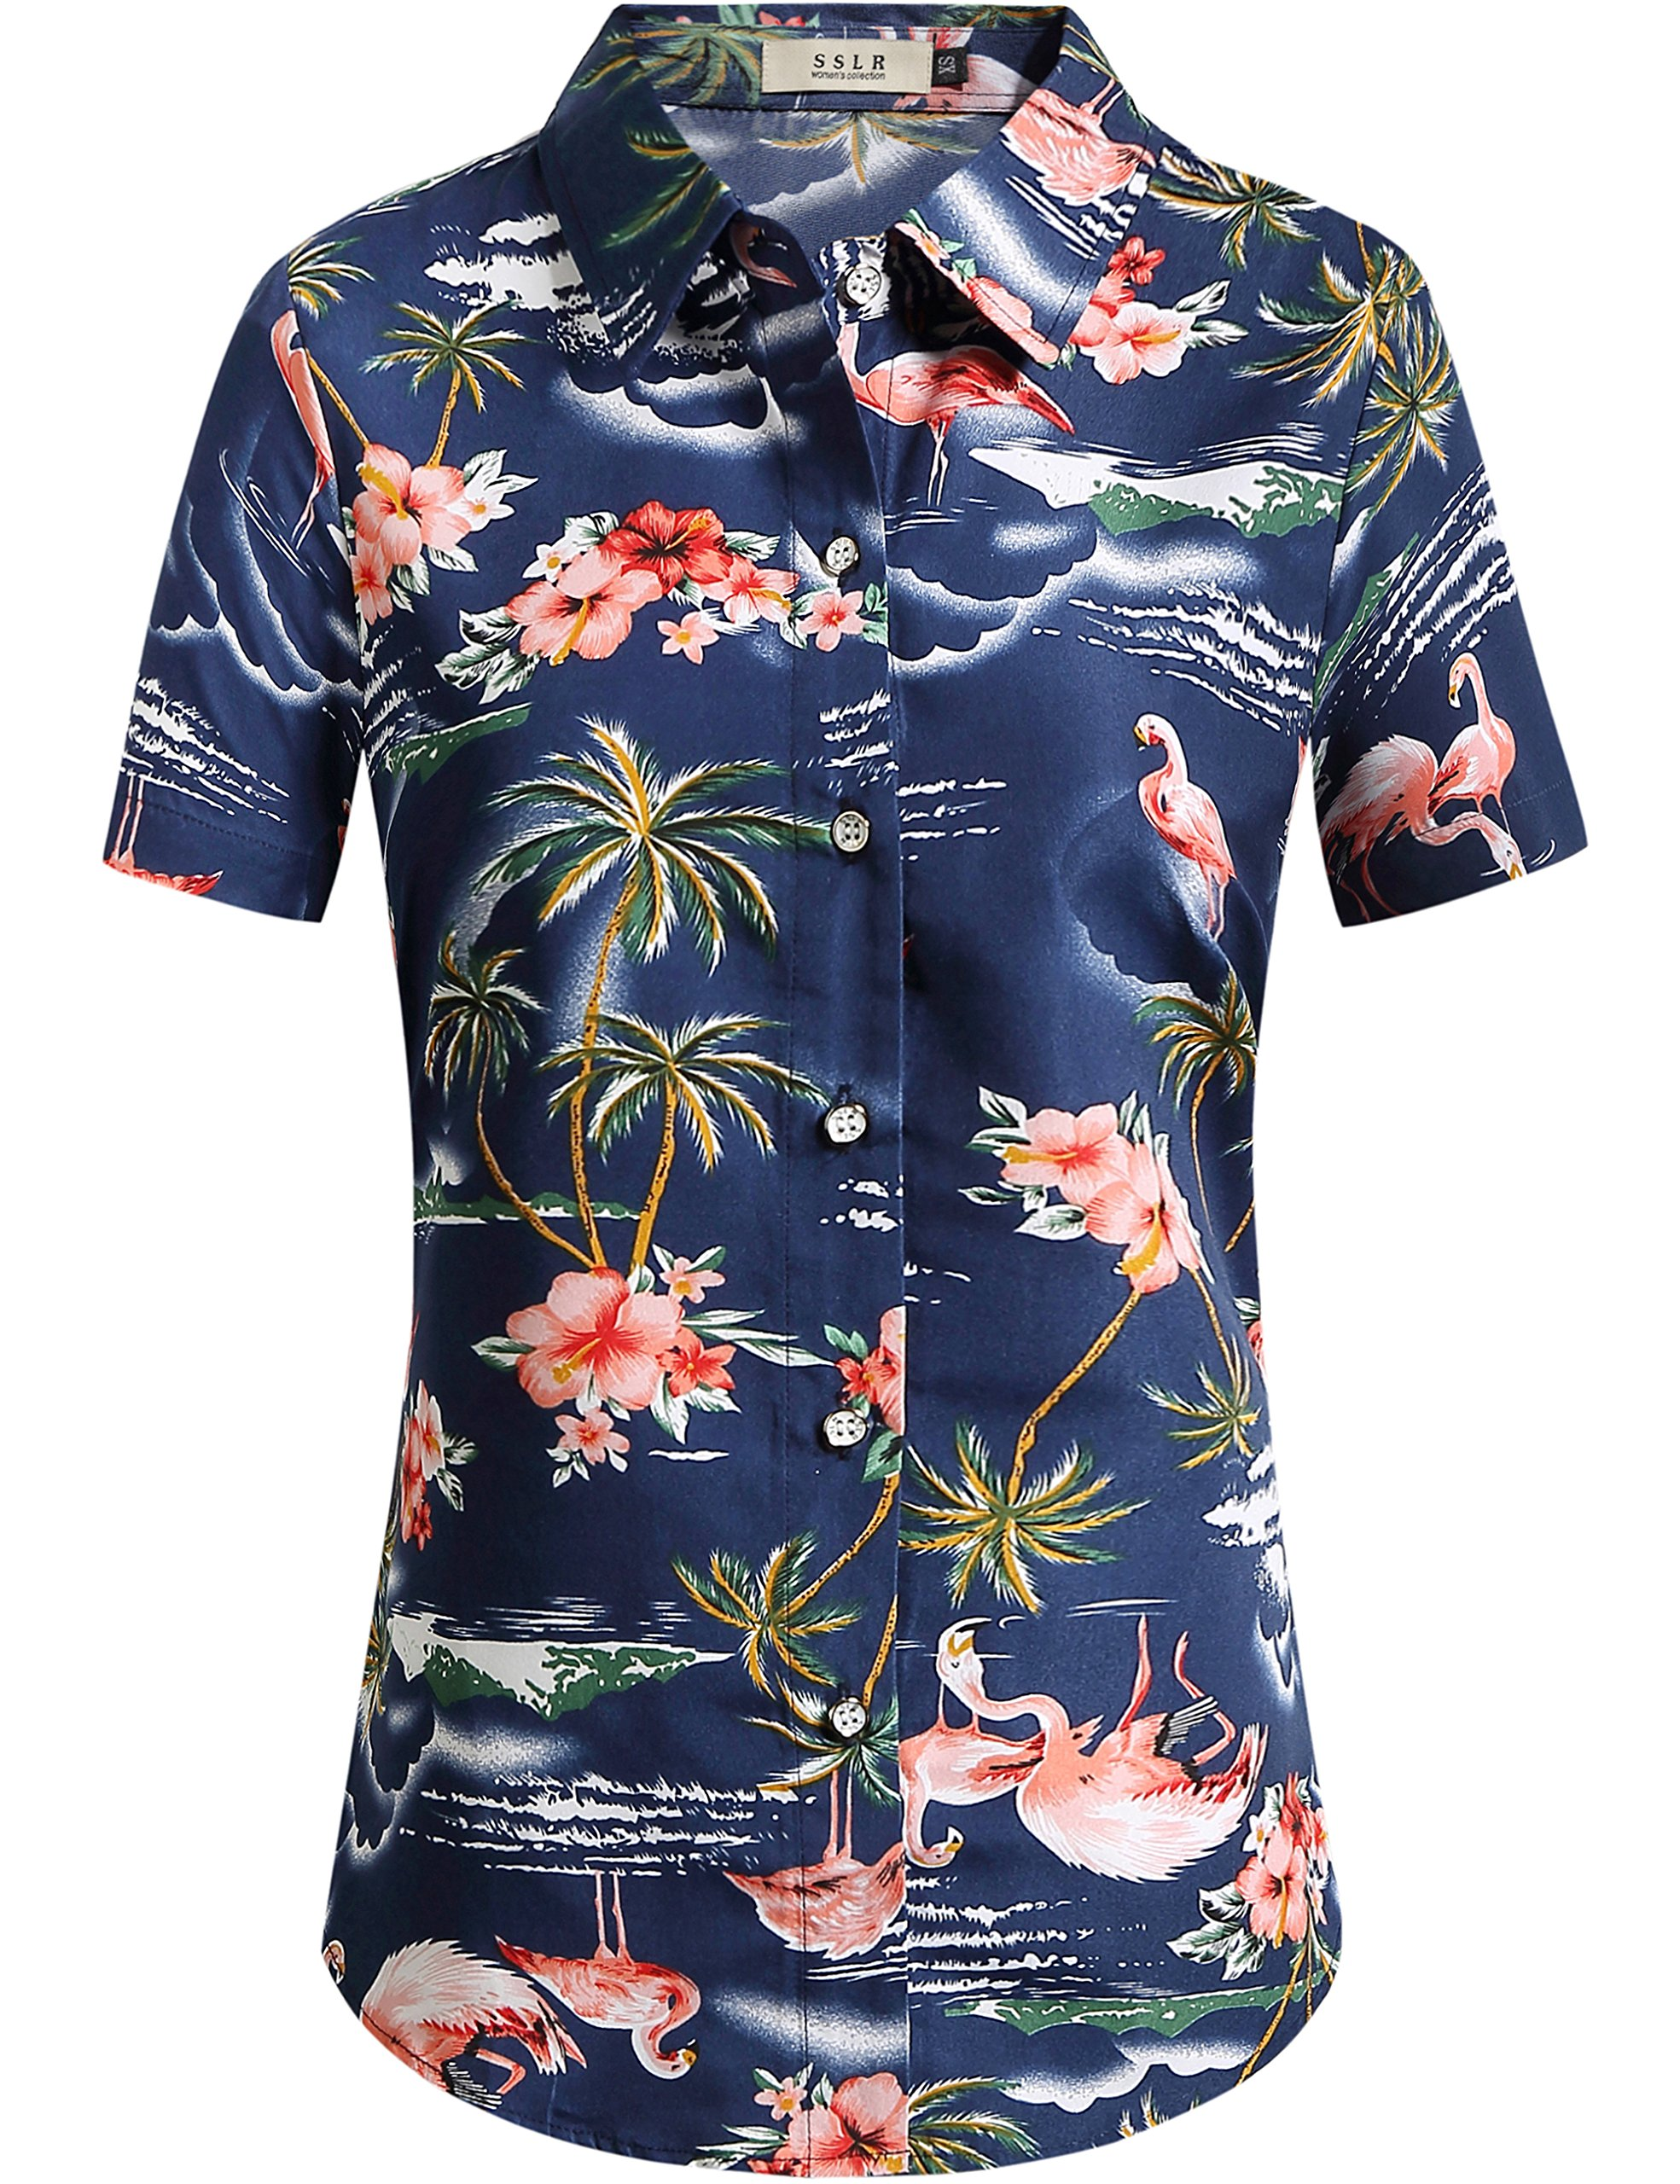 84a318374c9 Galleon - SSLR Women s Flamingos Floral Casual Short Sleeve Hawaiian Shirt  (Small